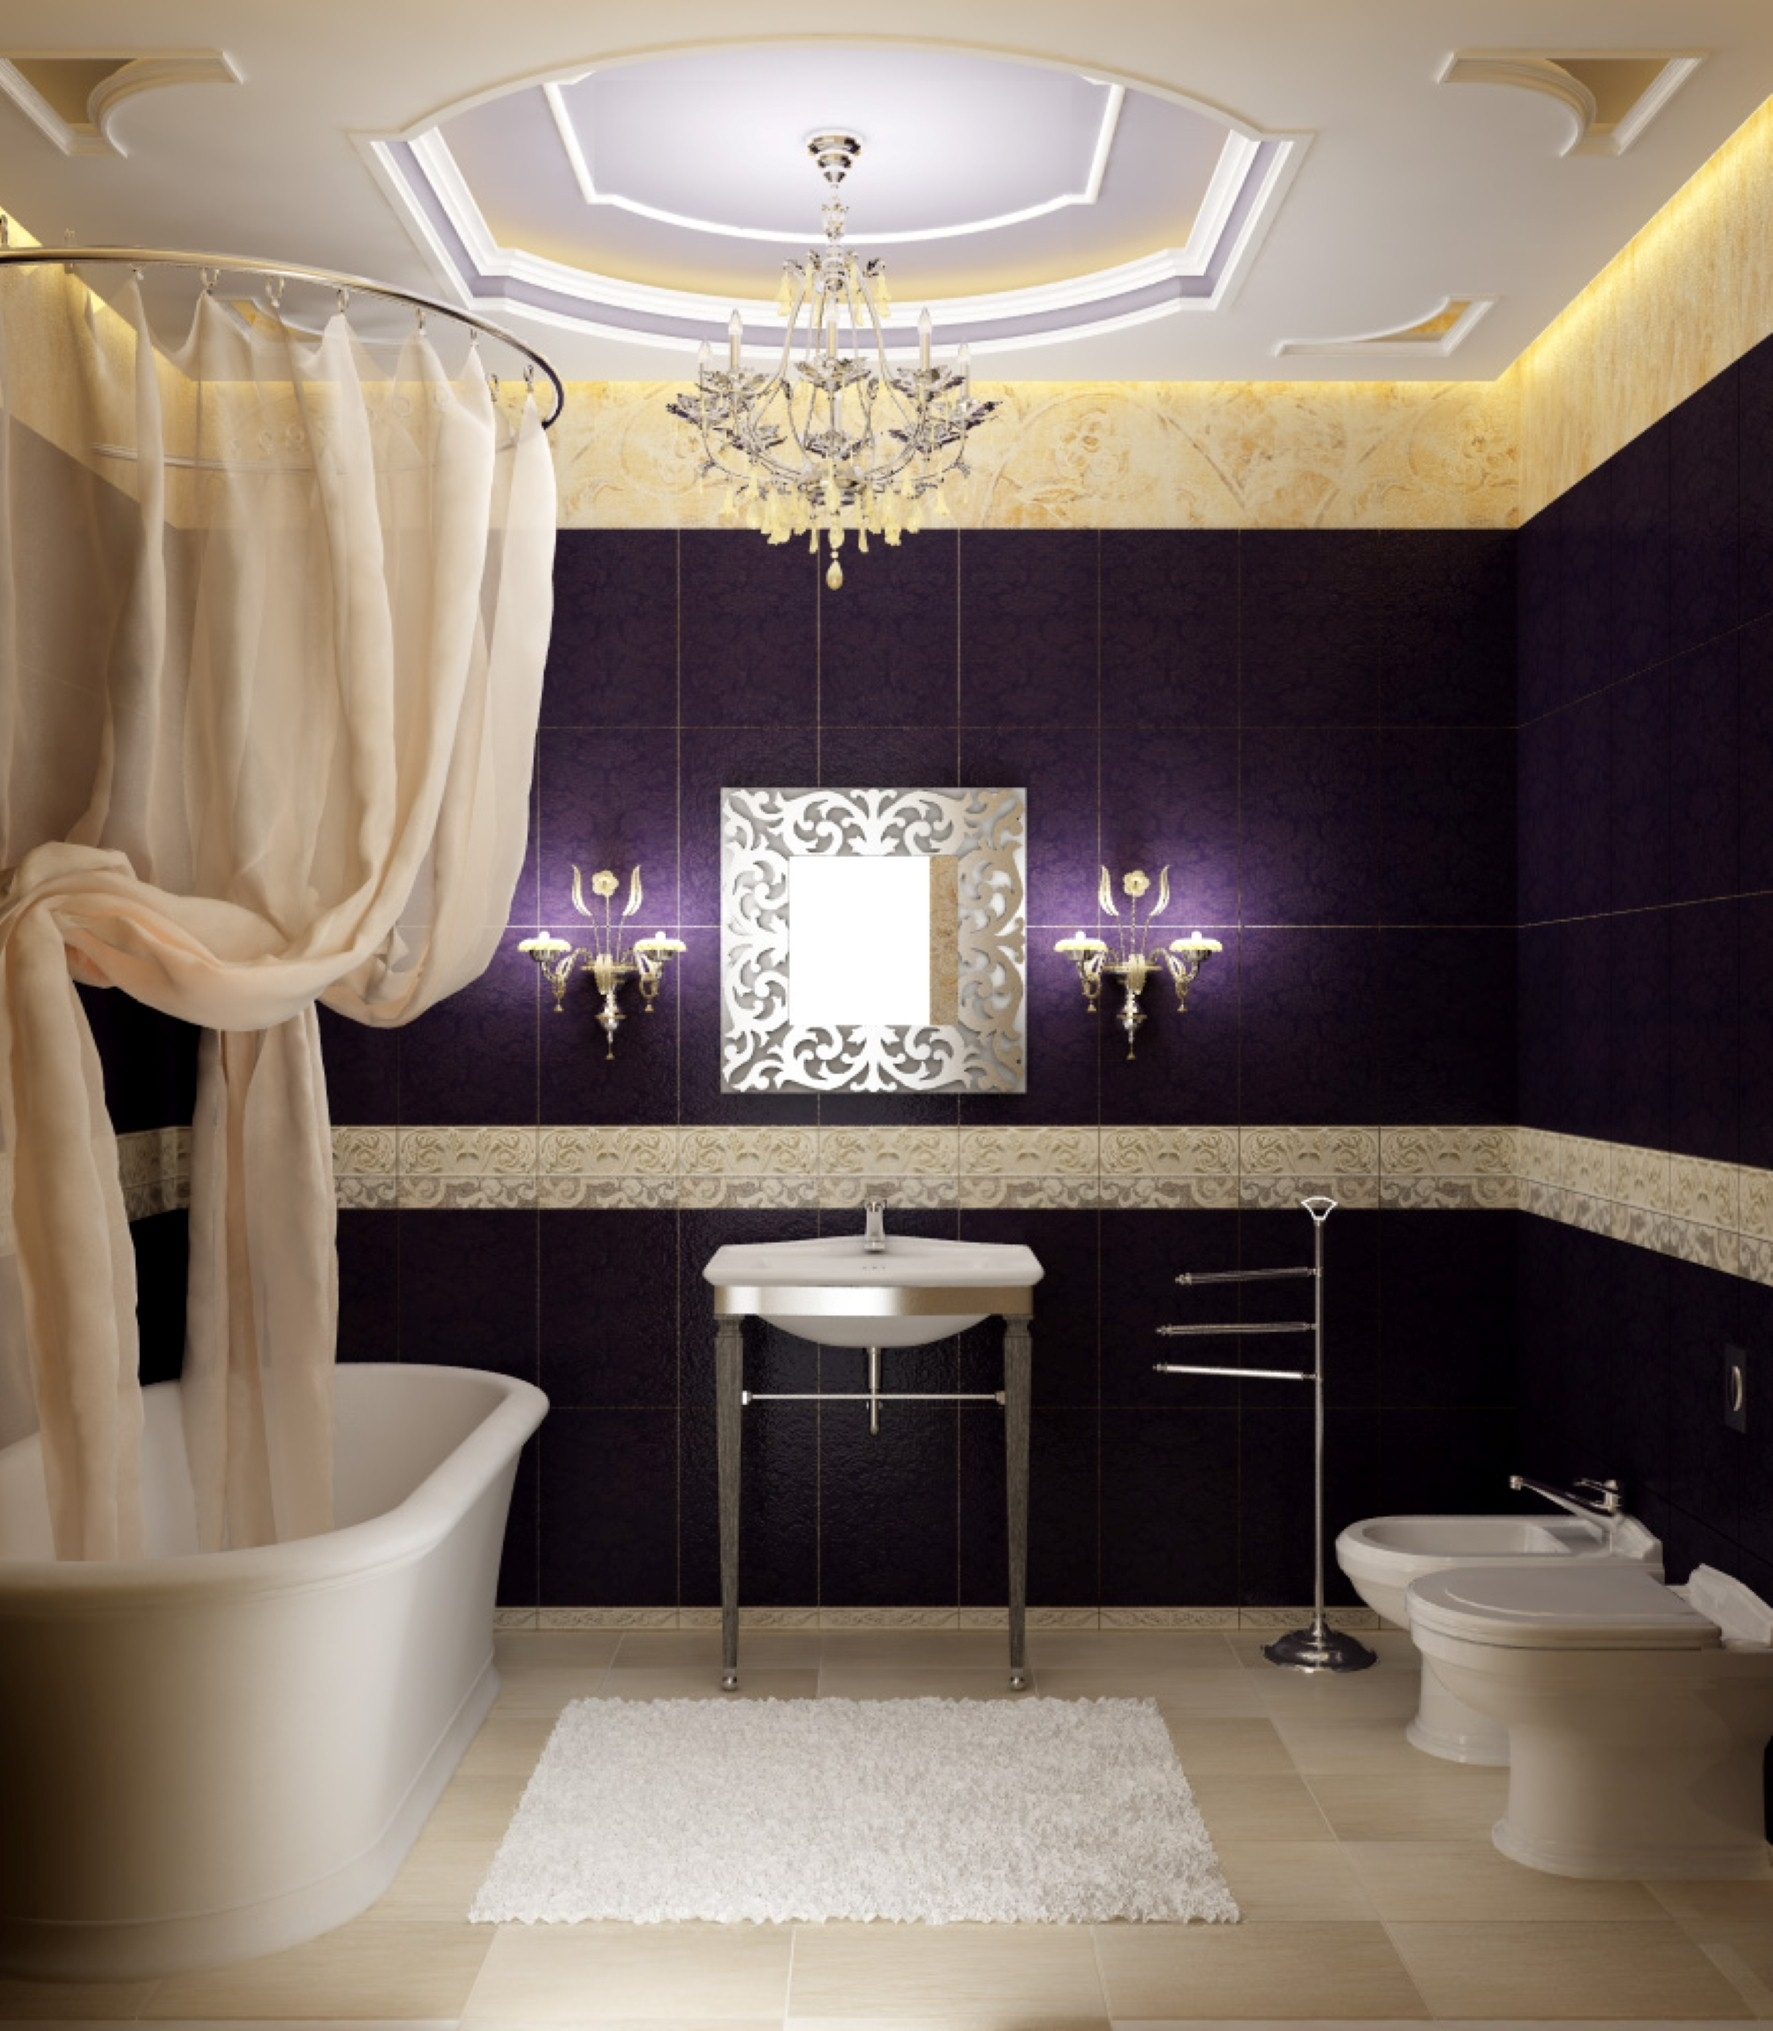 Spacious Photos As Bathroom Design For Divine Design Ideas Of Great Creation With Innovative Bathroom (Image 21 of 29)